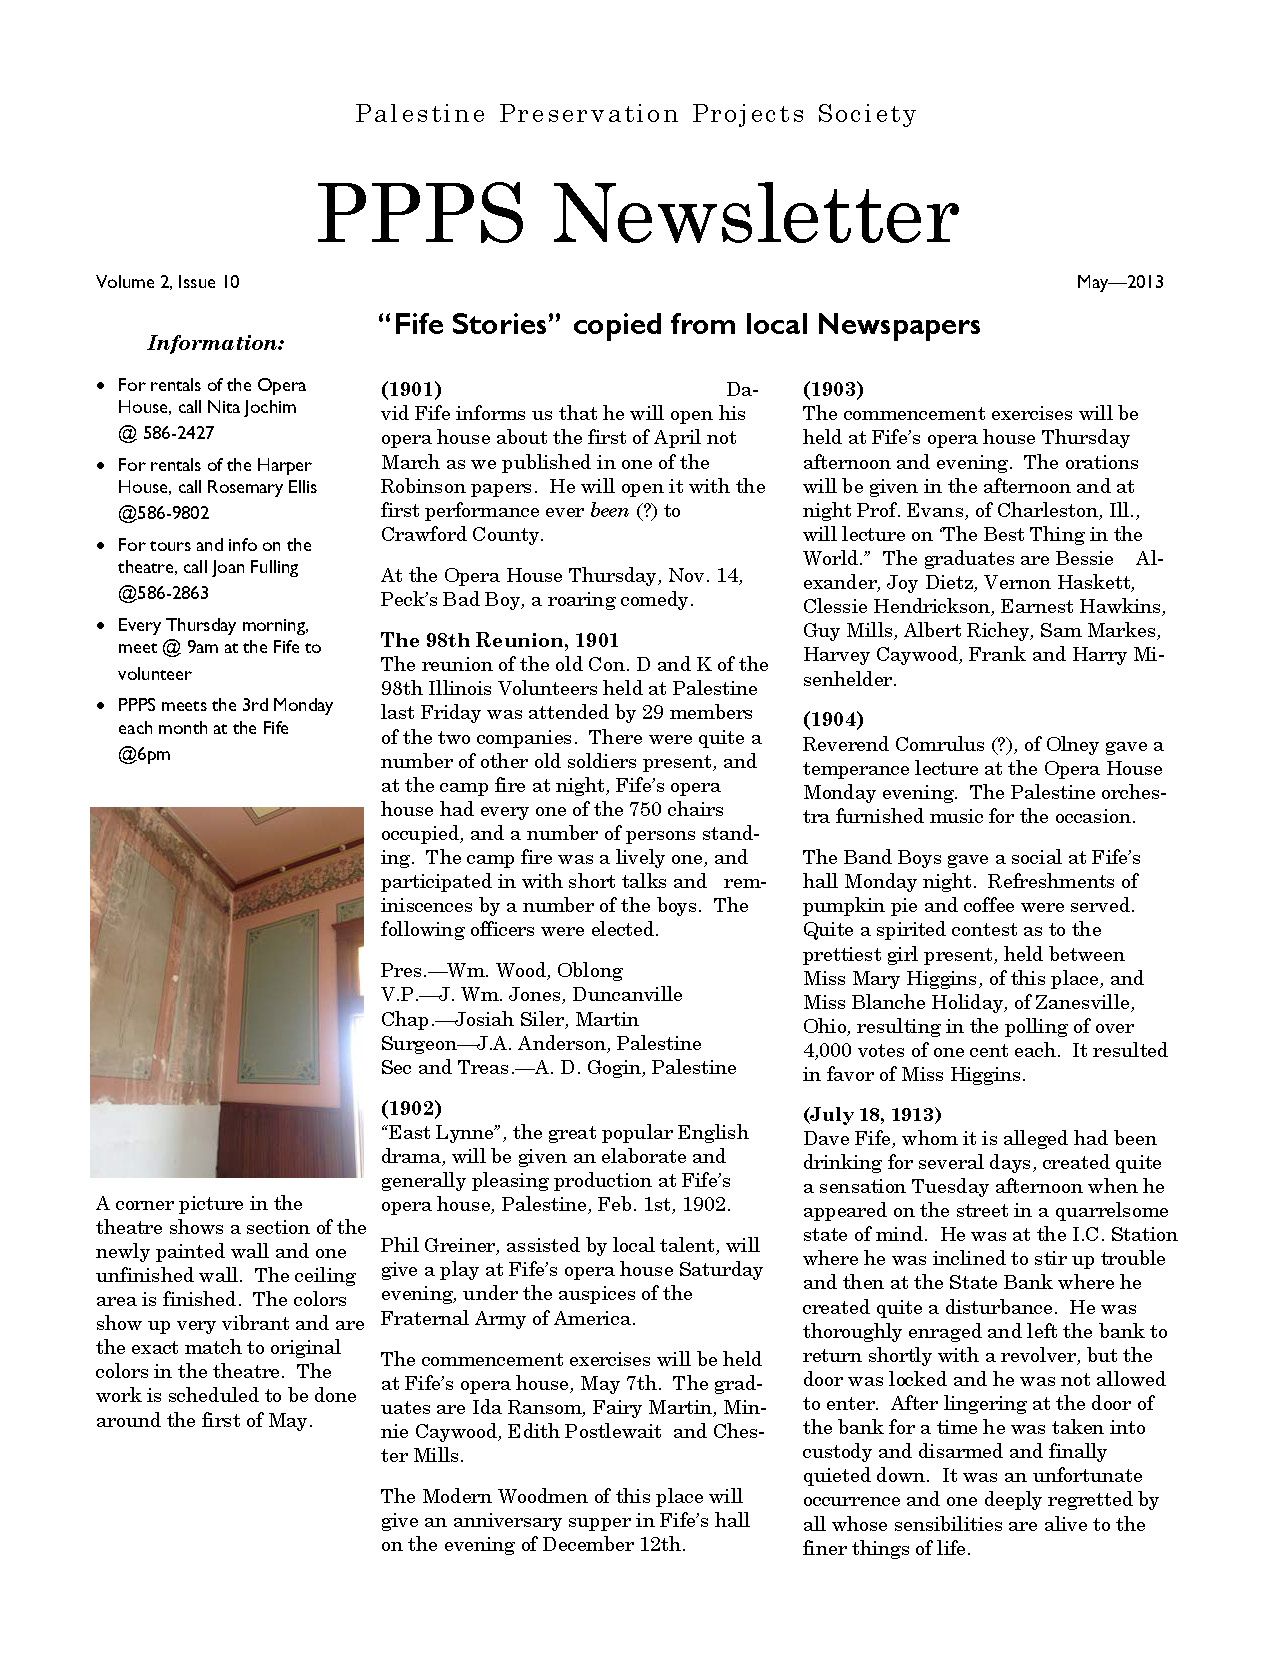 PPPS May News